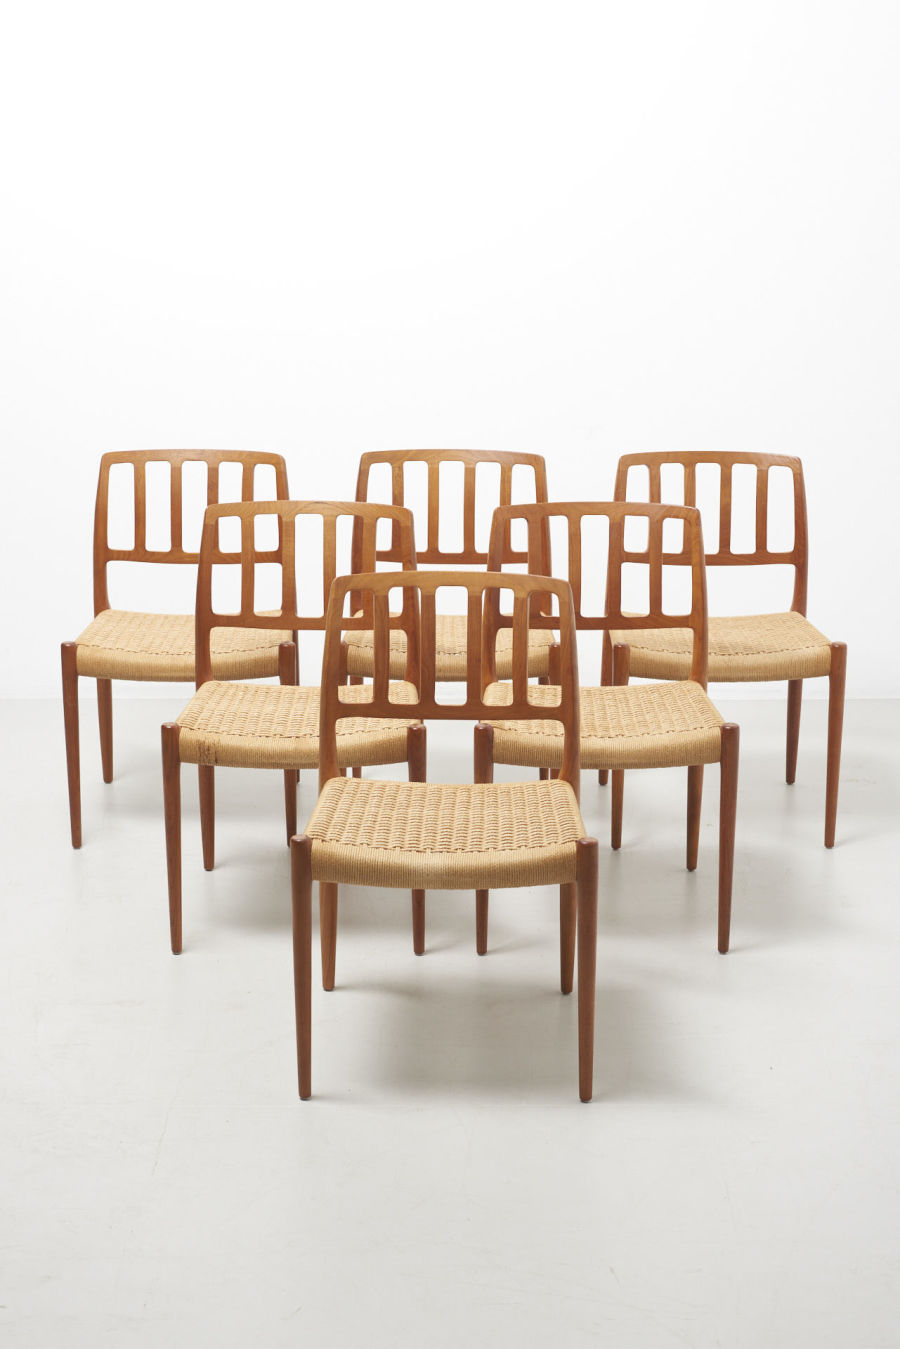 modestfurniture-vintage-2252-niels-moller-dining-chairs-model-83-papercord01